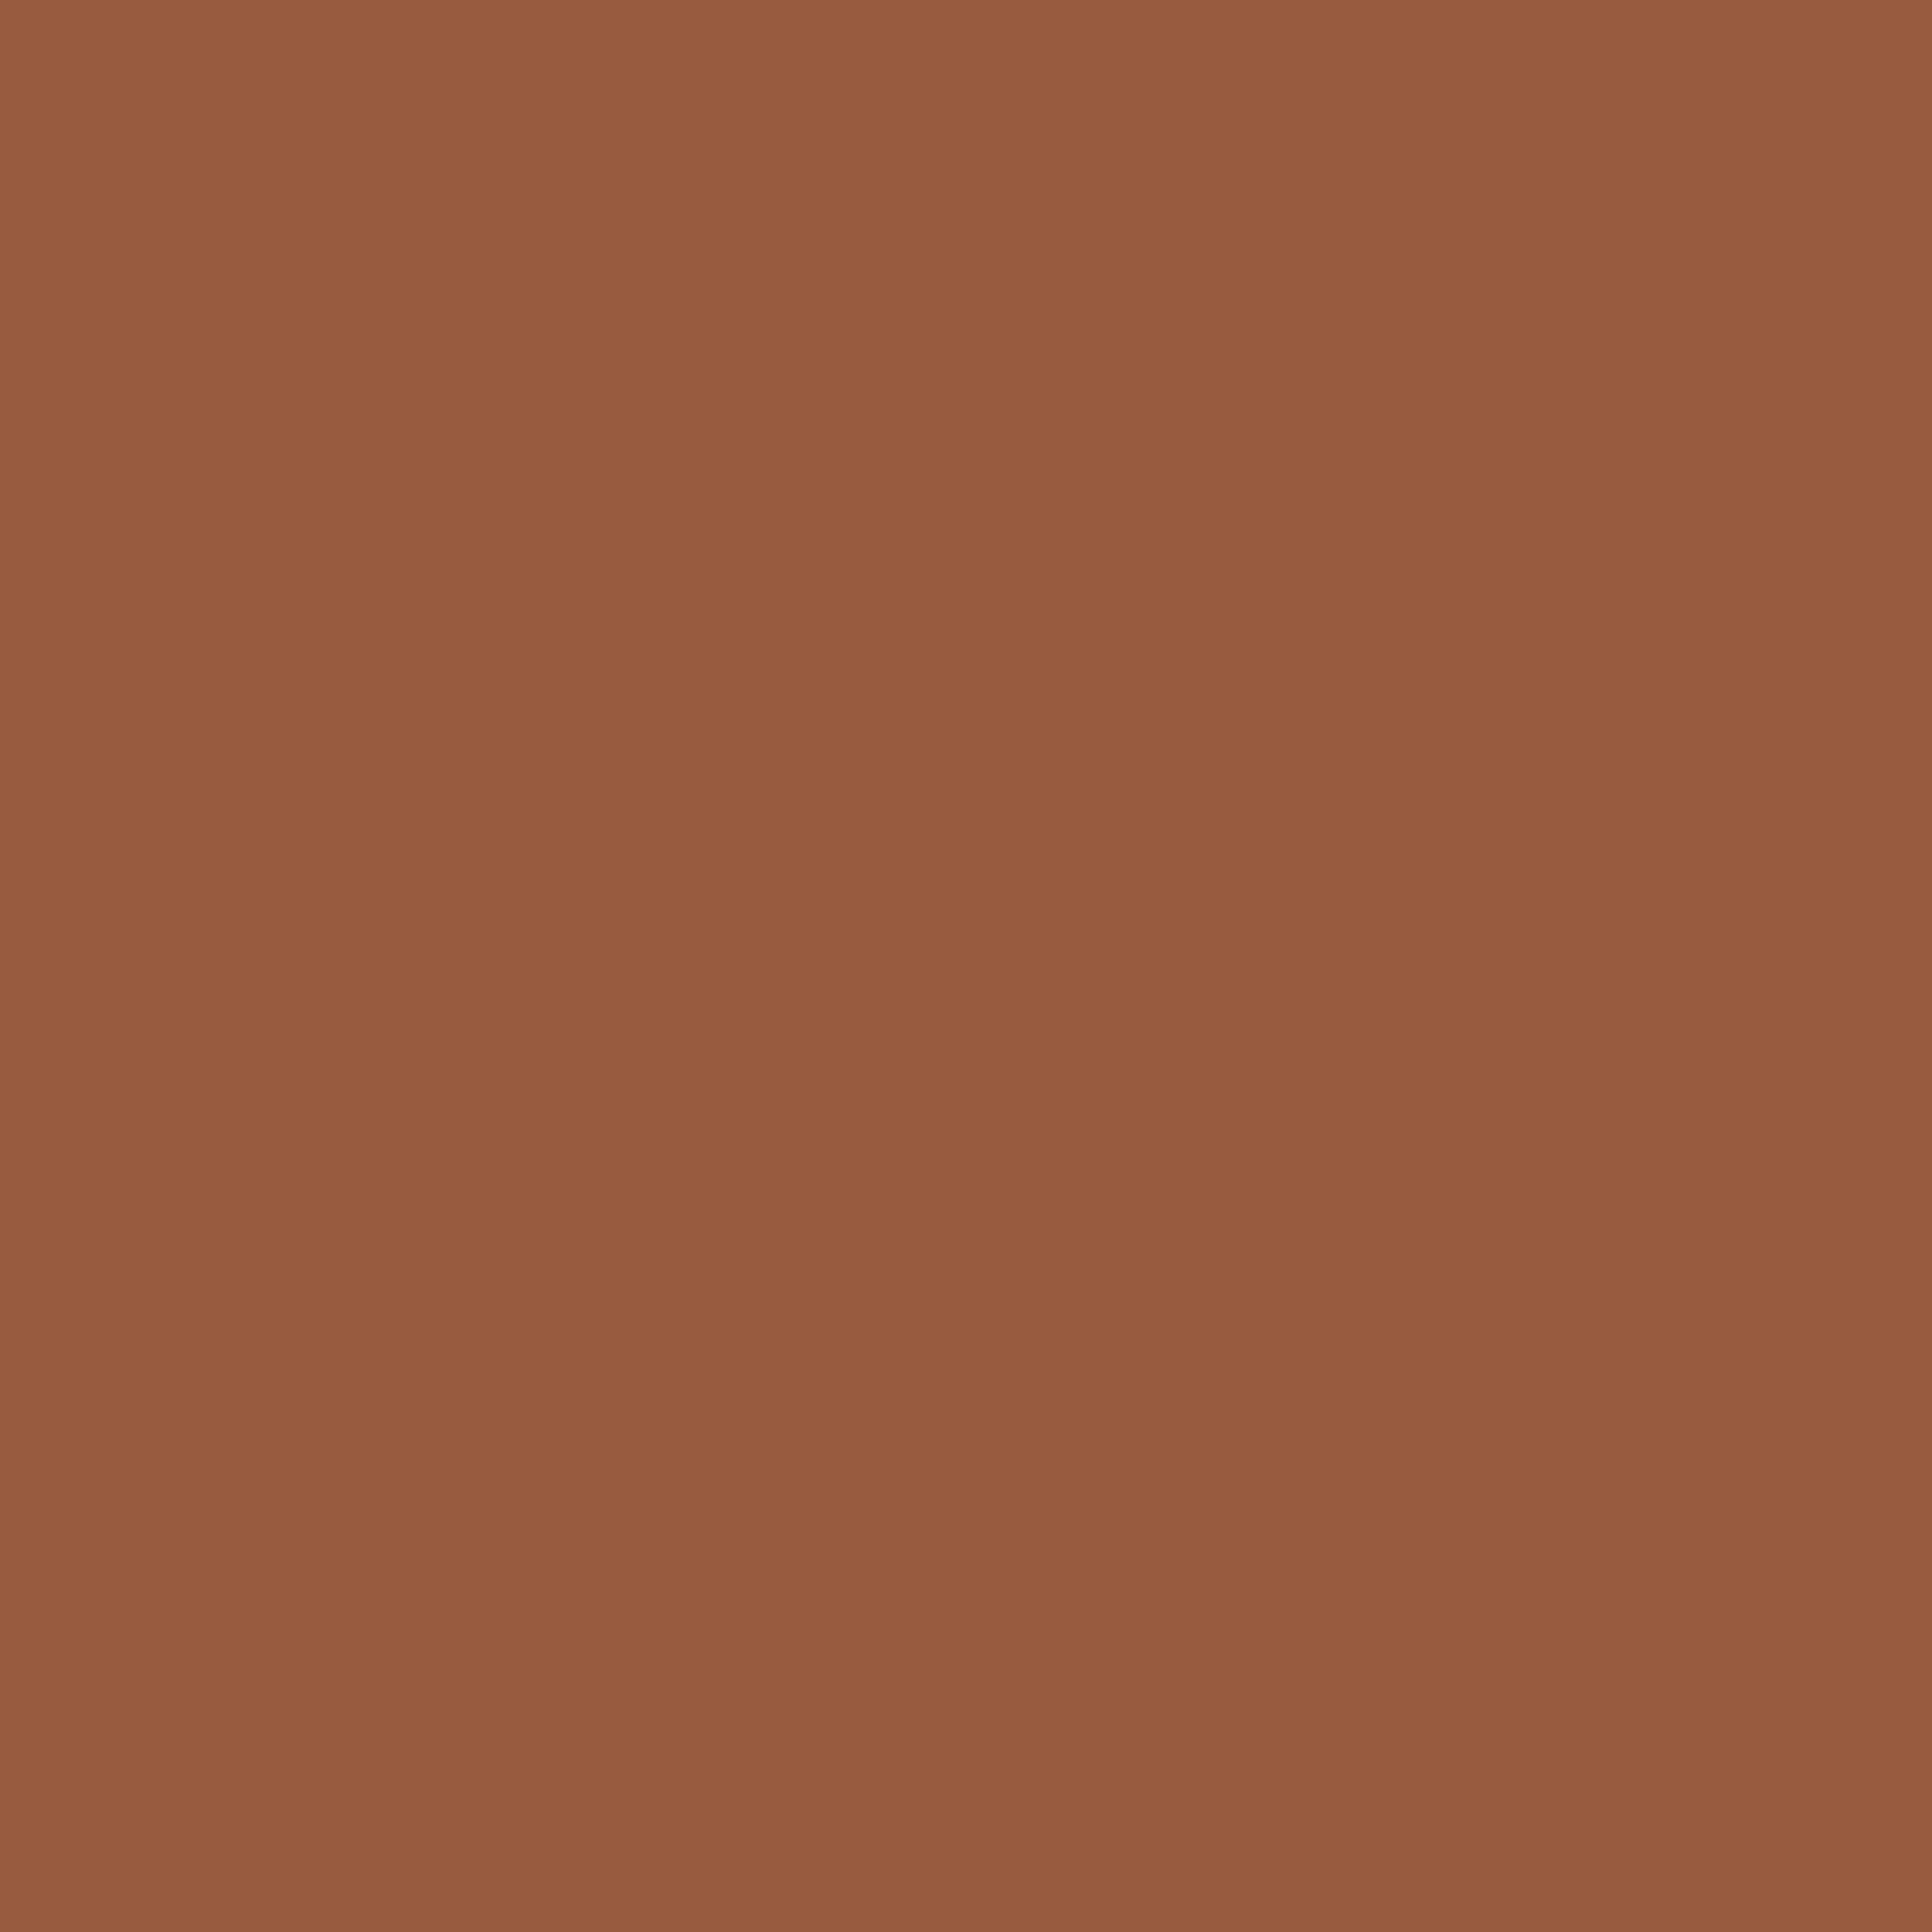 2732x2732 Coconut Solid Color Background